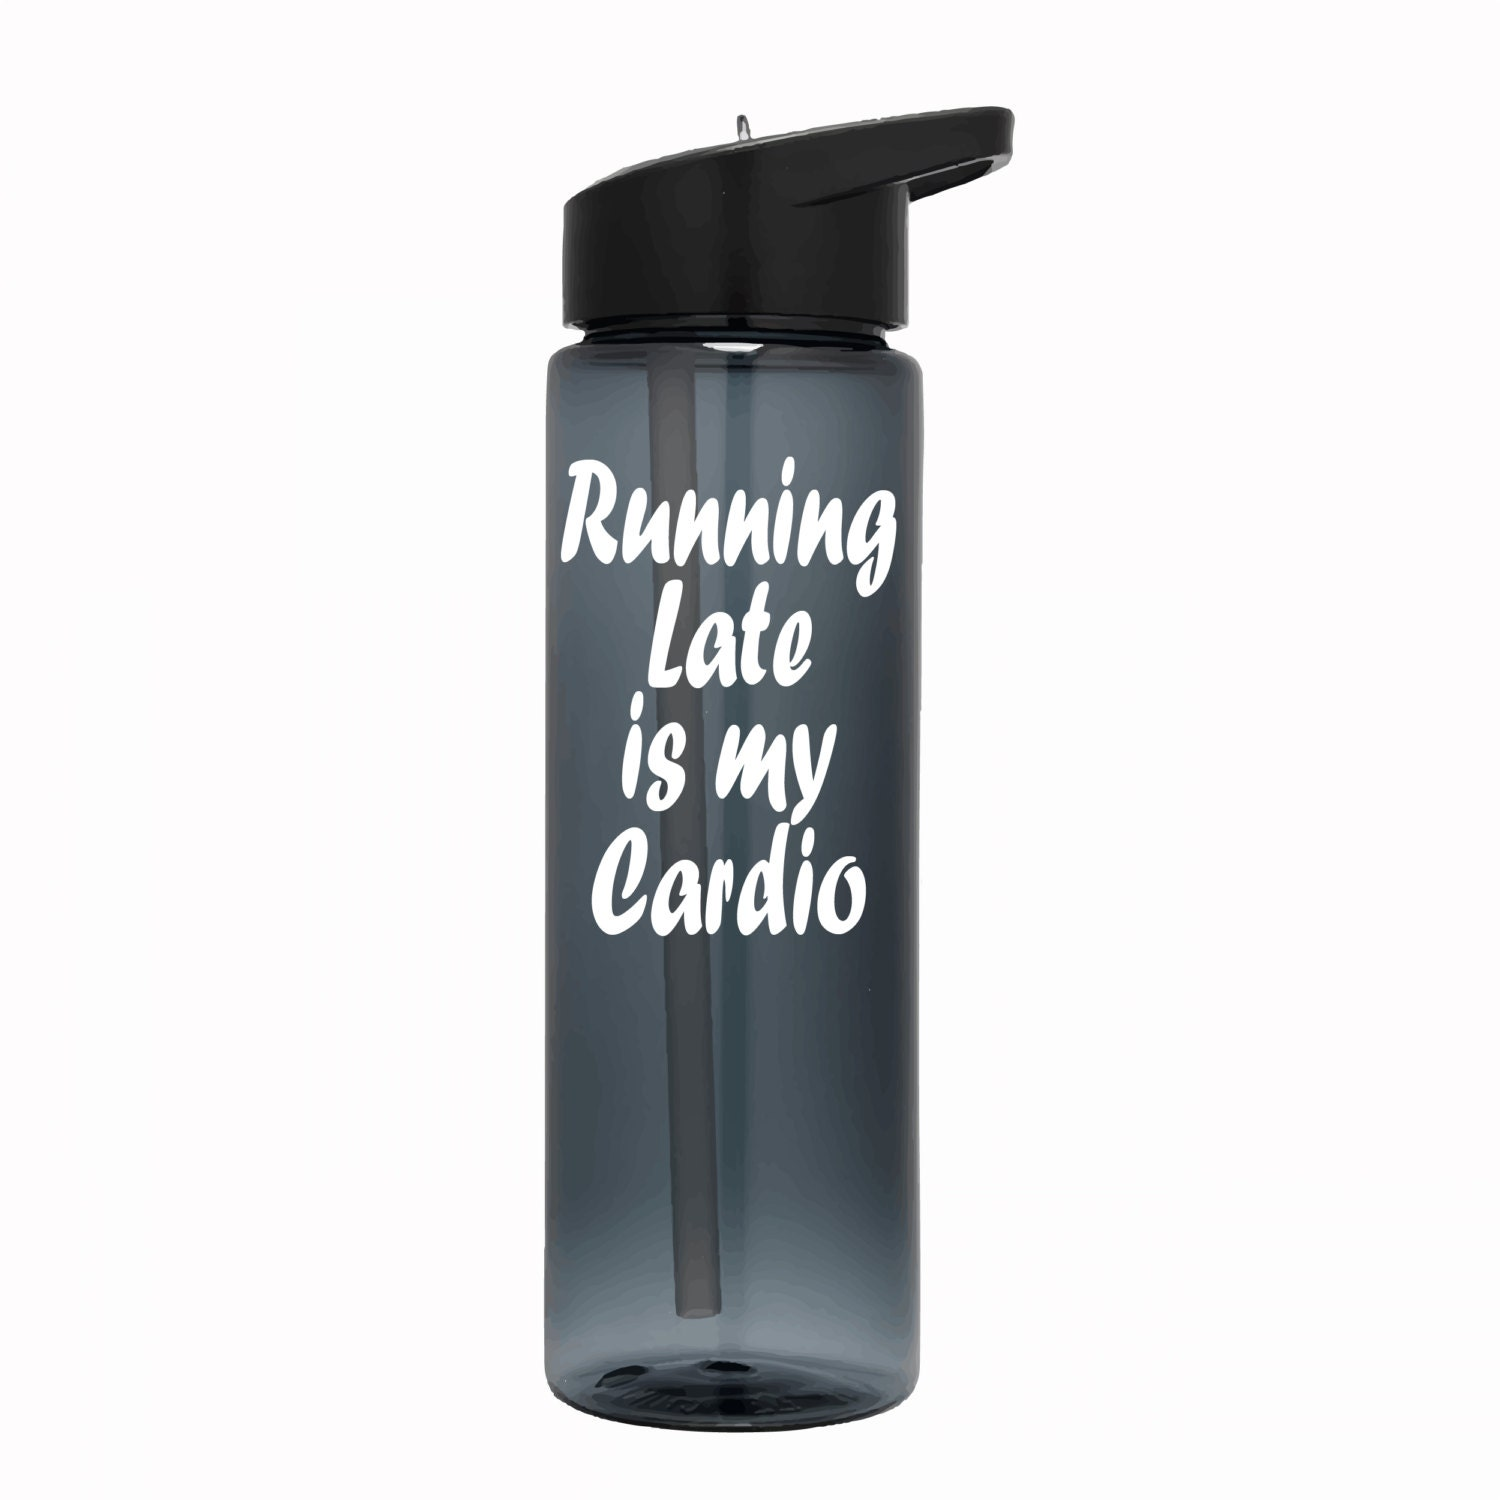 Funny Tumbler Cup Funny Gym Water Bottle Running Late Is My